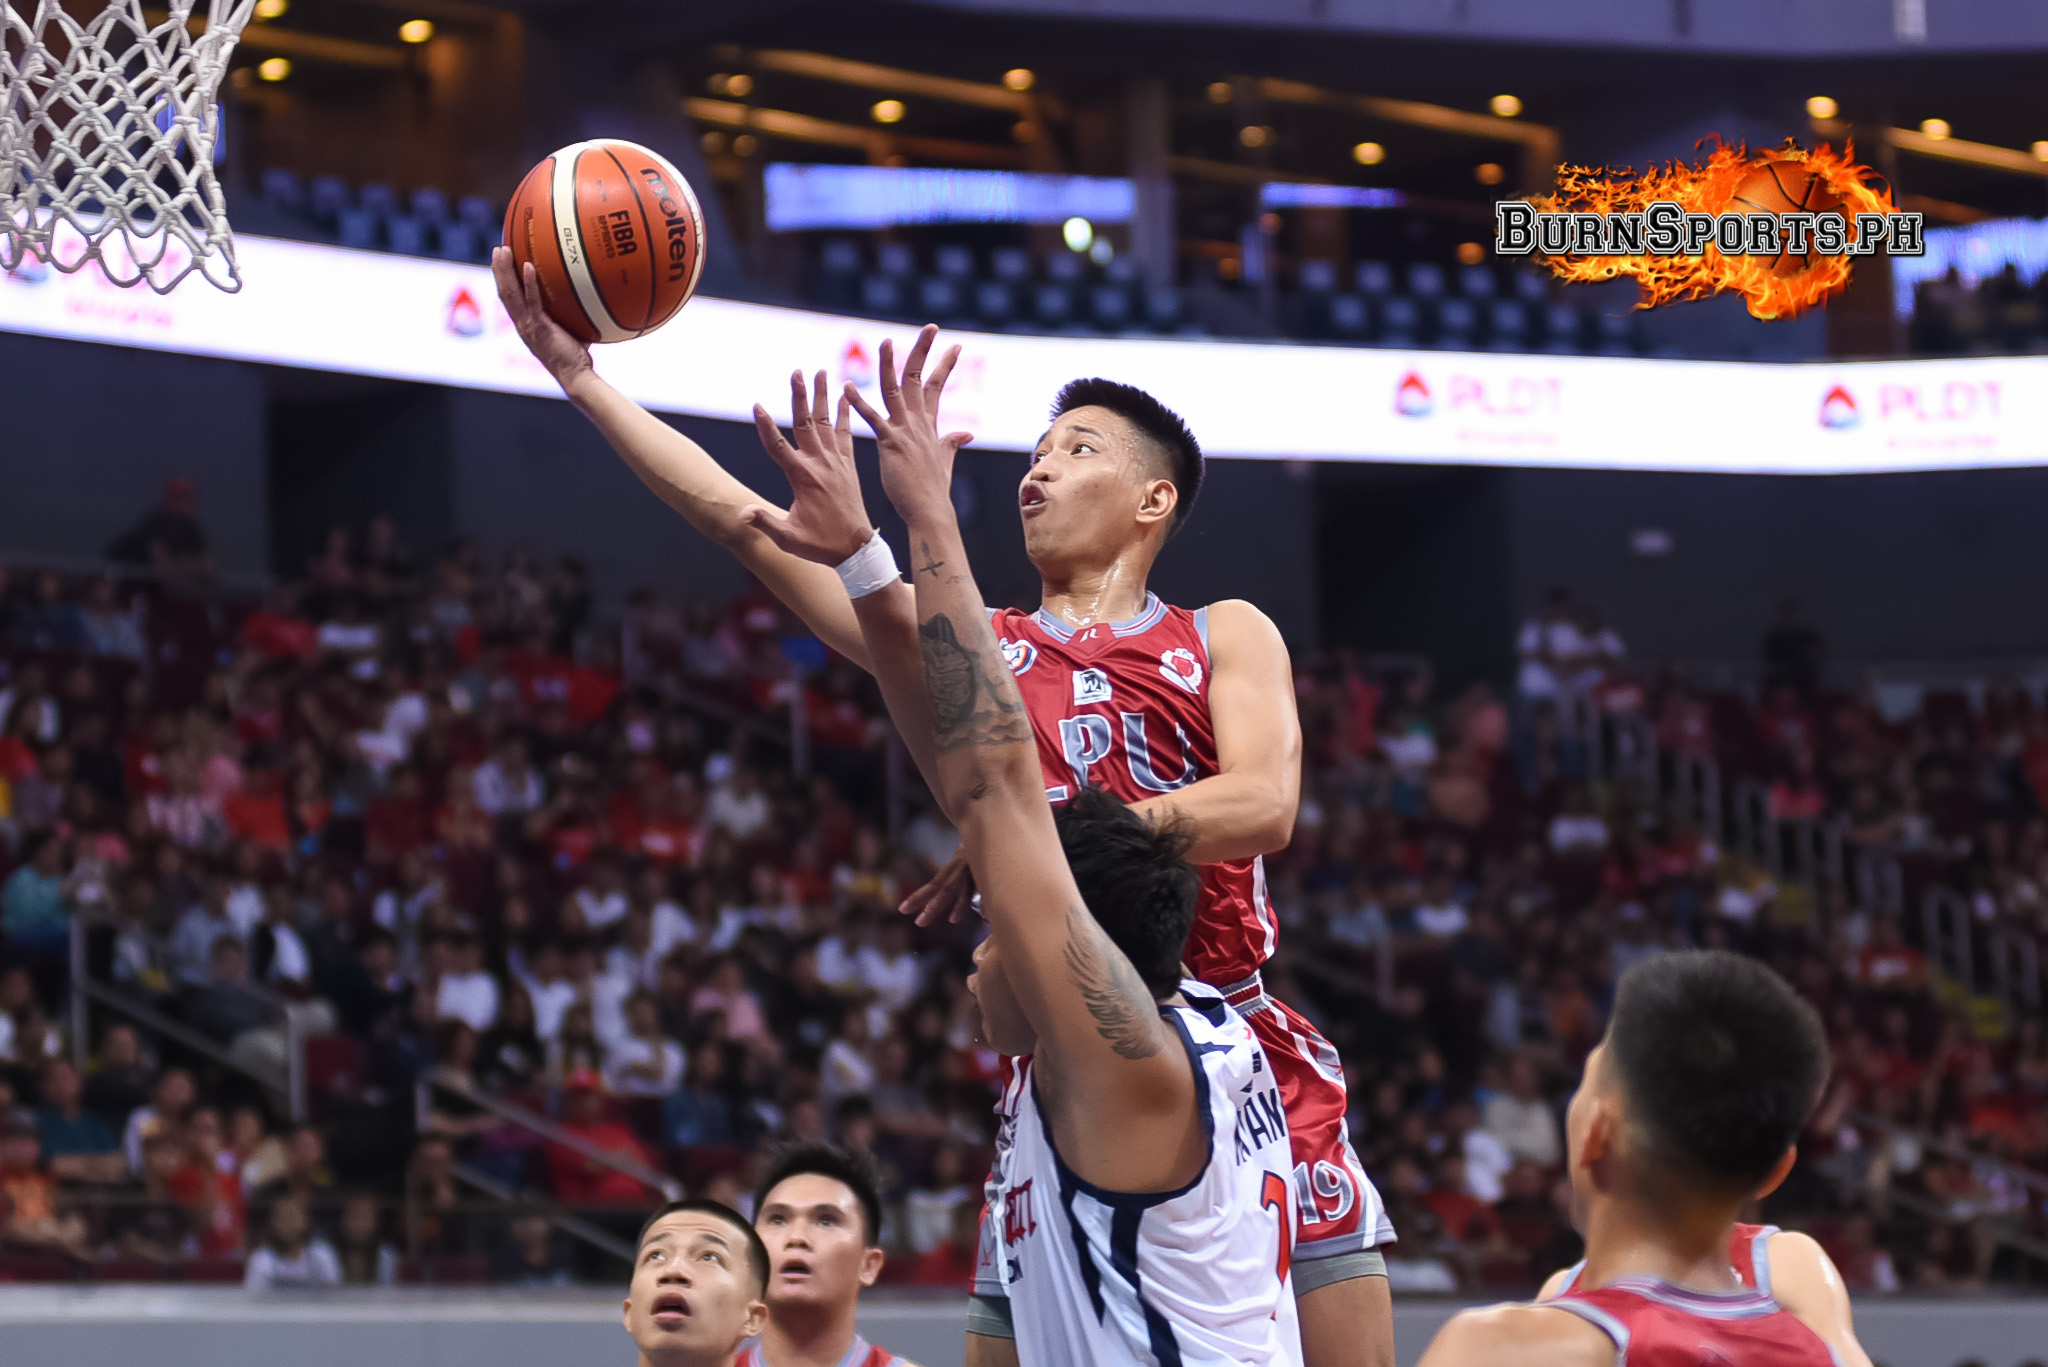 Marcelino twins boost Lyceum's opening victory against Letran